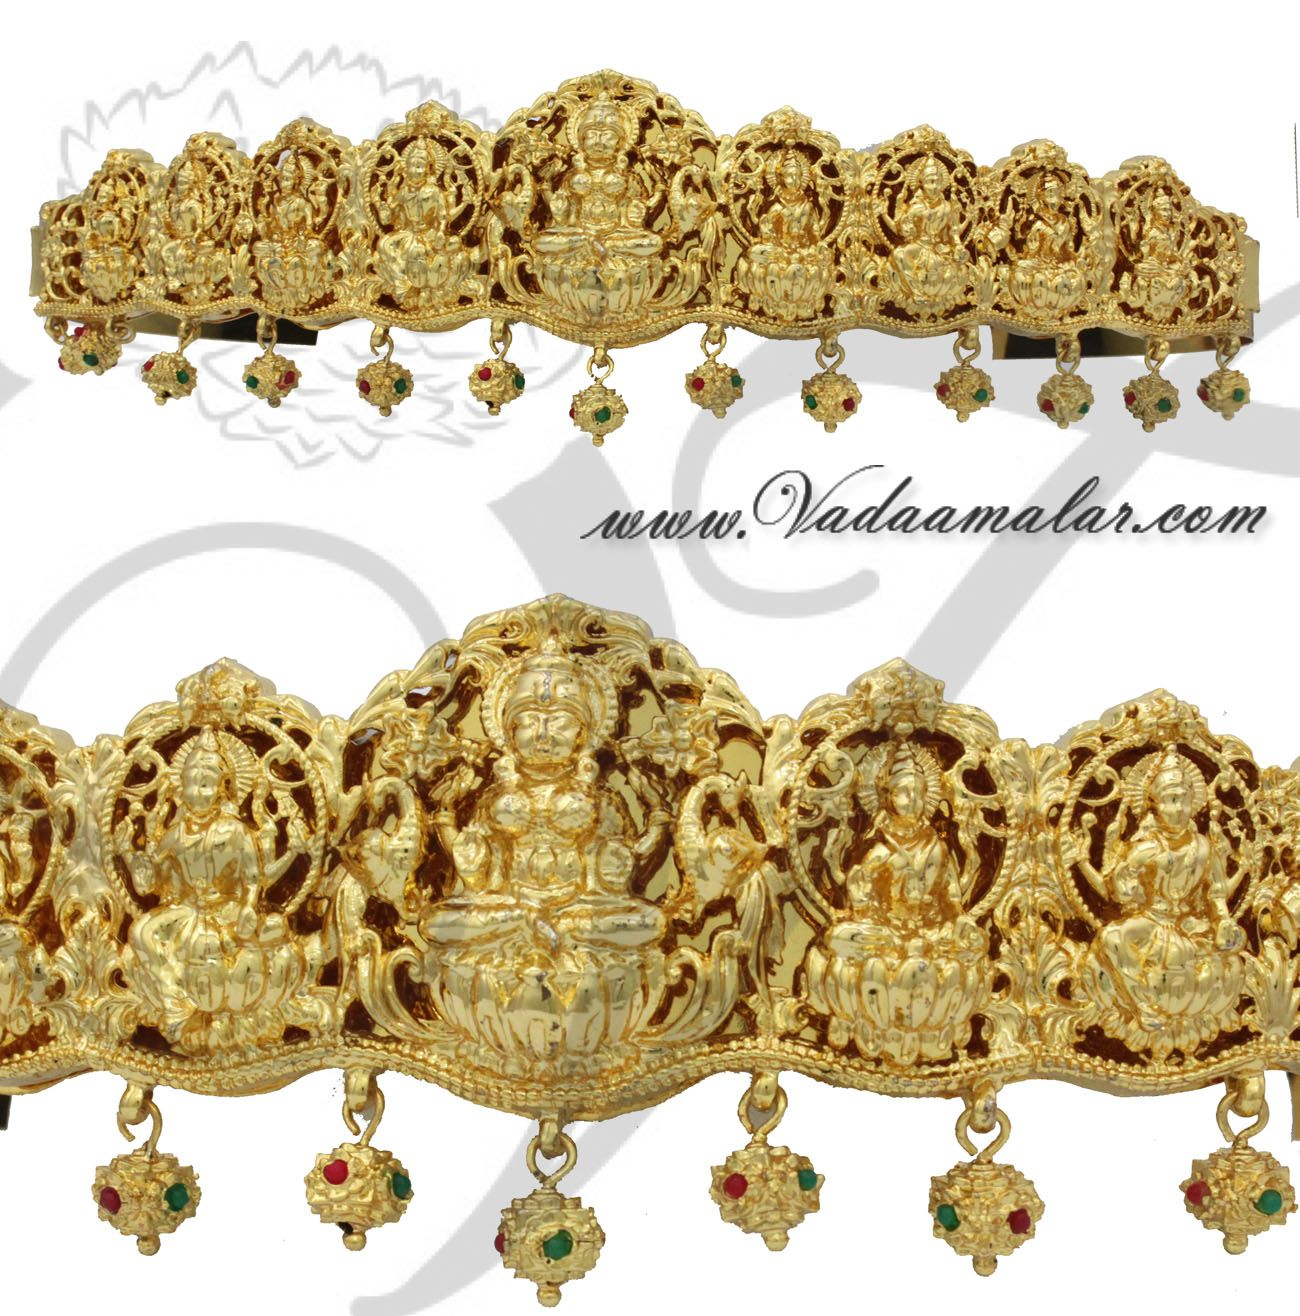 Gold vaddanam oddiyanam kammarpatta waisbelt designs south indian - Antique Lakshmi Design Oddiyanam Kamarpatta Indian Waist Hip Belt Details Https Www